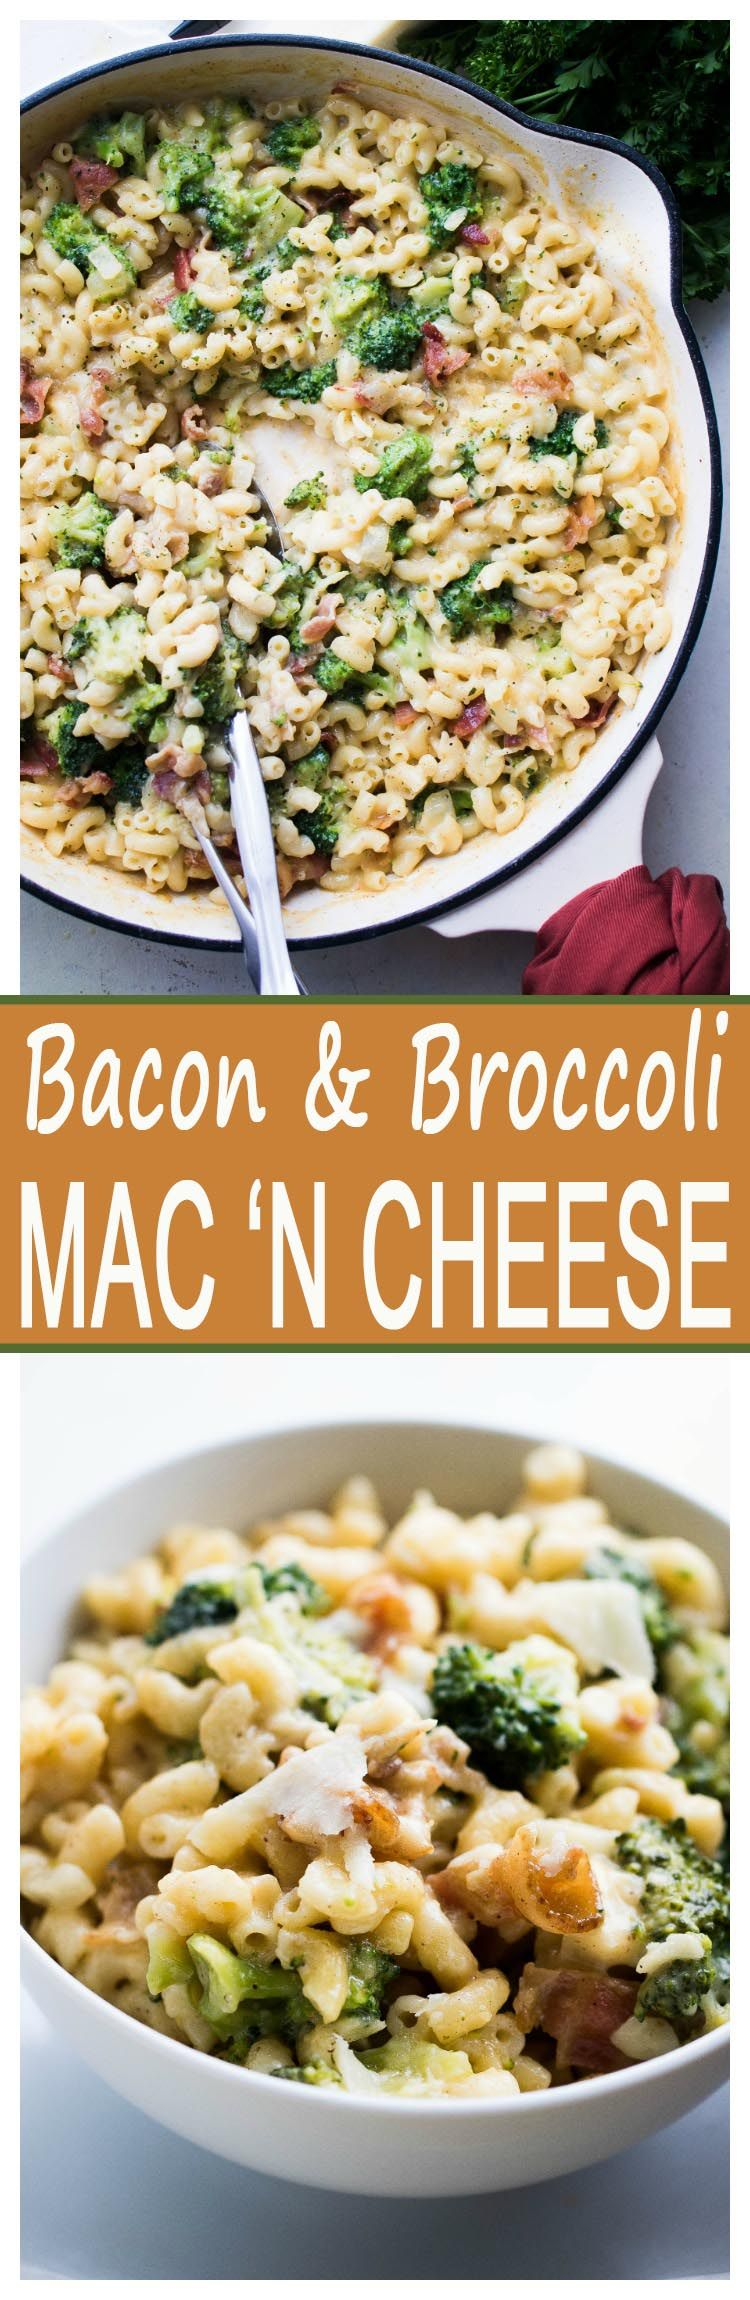 Broccoli Bacon Macaroni and Cheese - Homemade mac n cheese loaded with broccoli, a sprinkle of bacon, and lots of cheesy flavor.